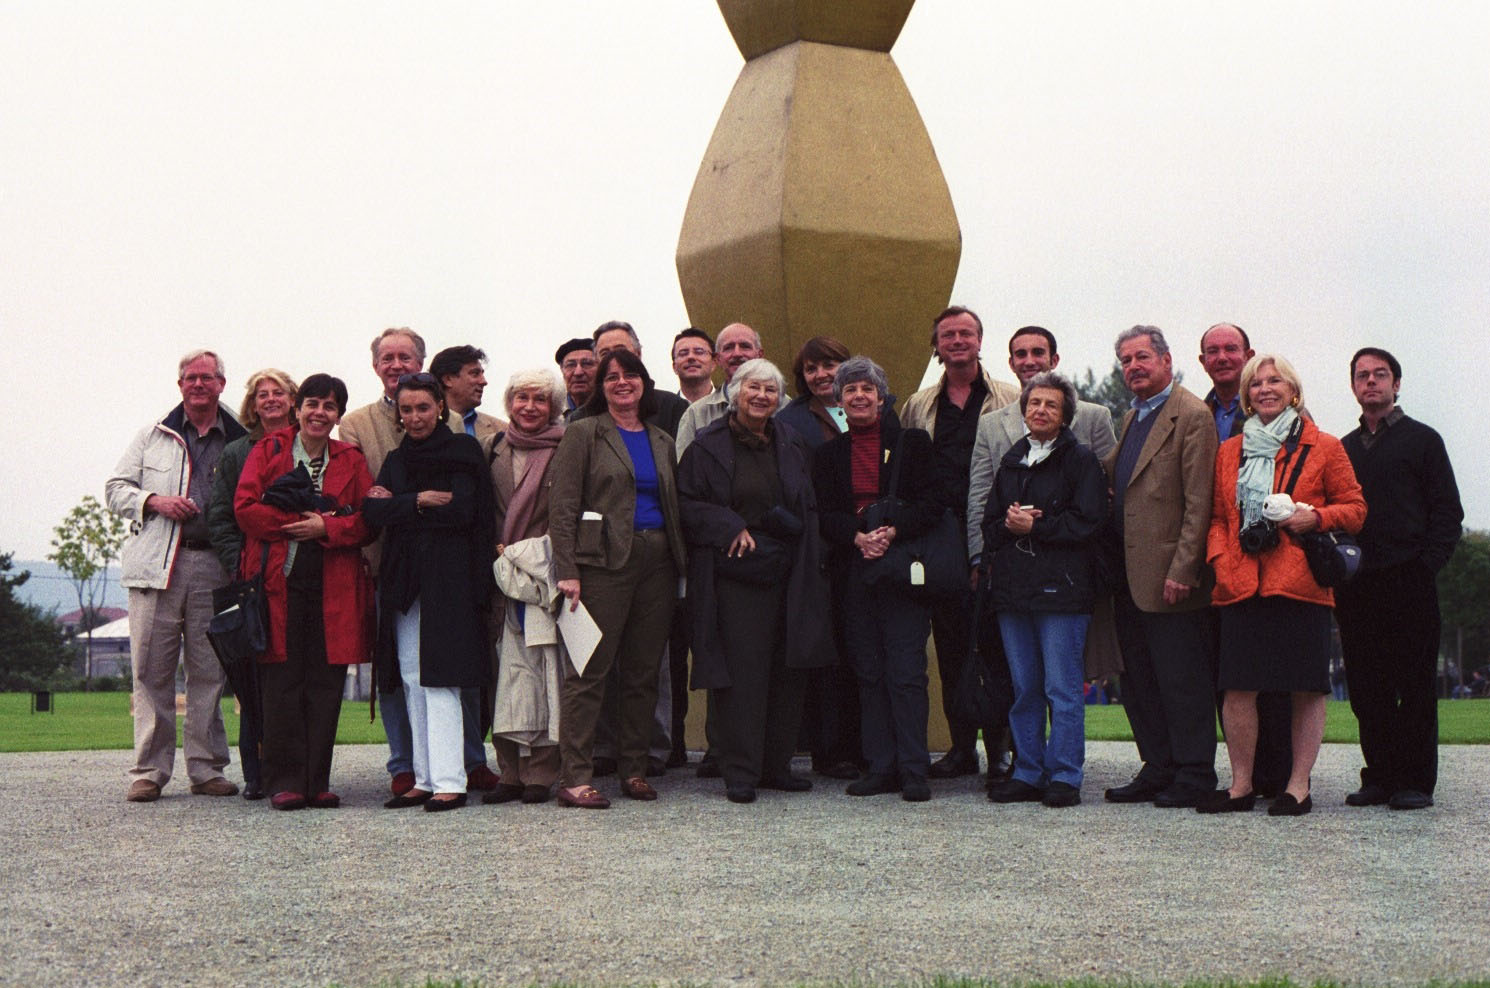 H. Peter Stern and a WMF group in front of Brancusi's Endless Column